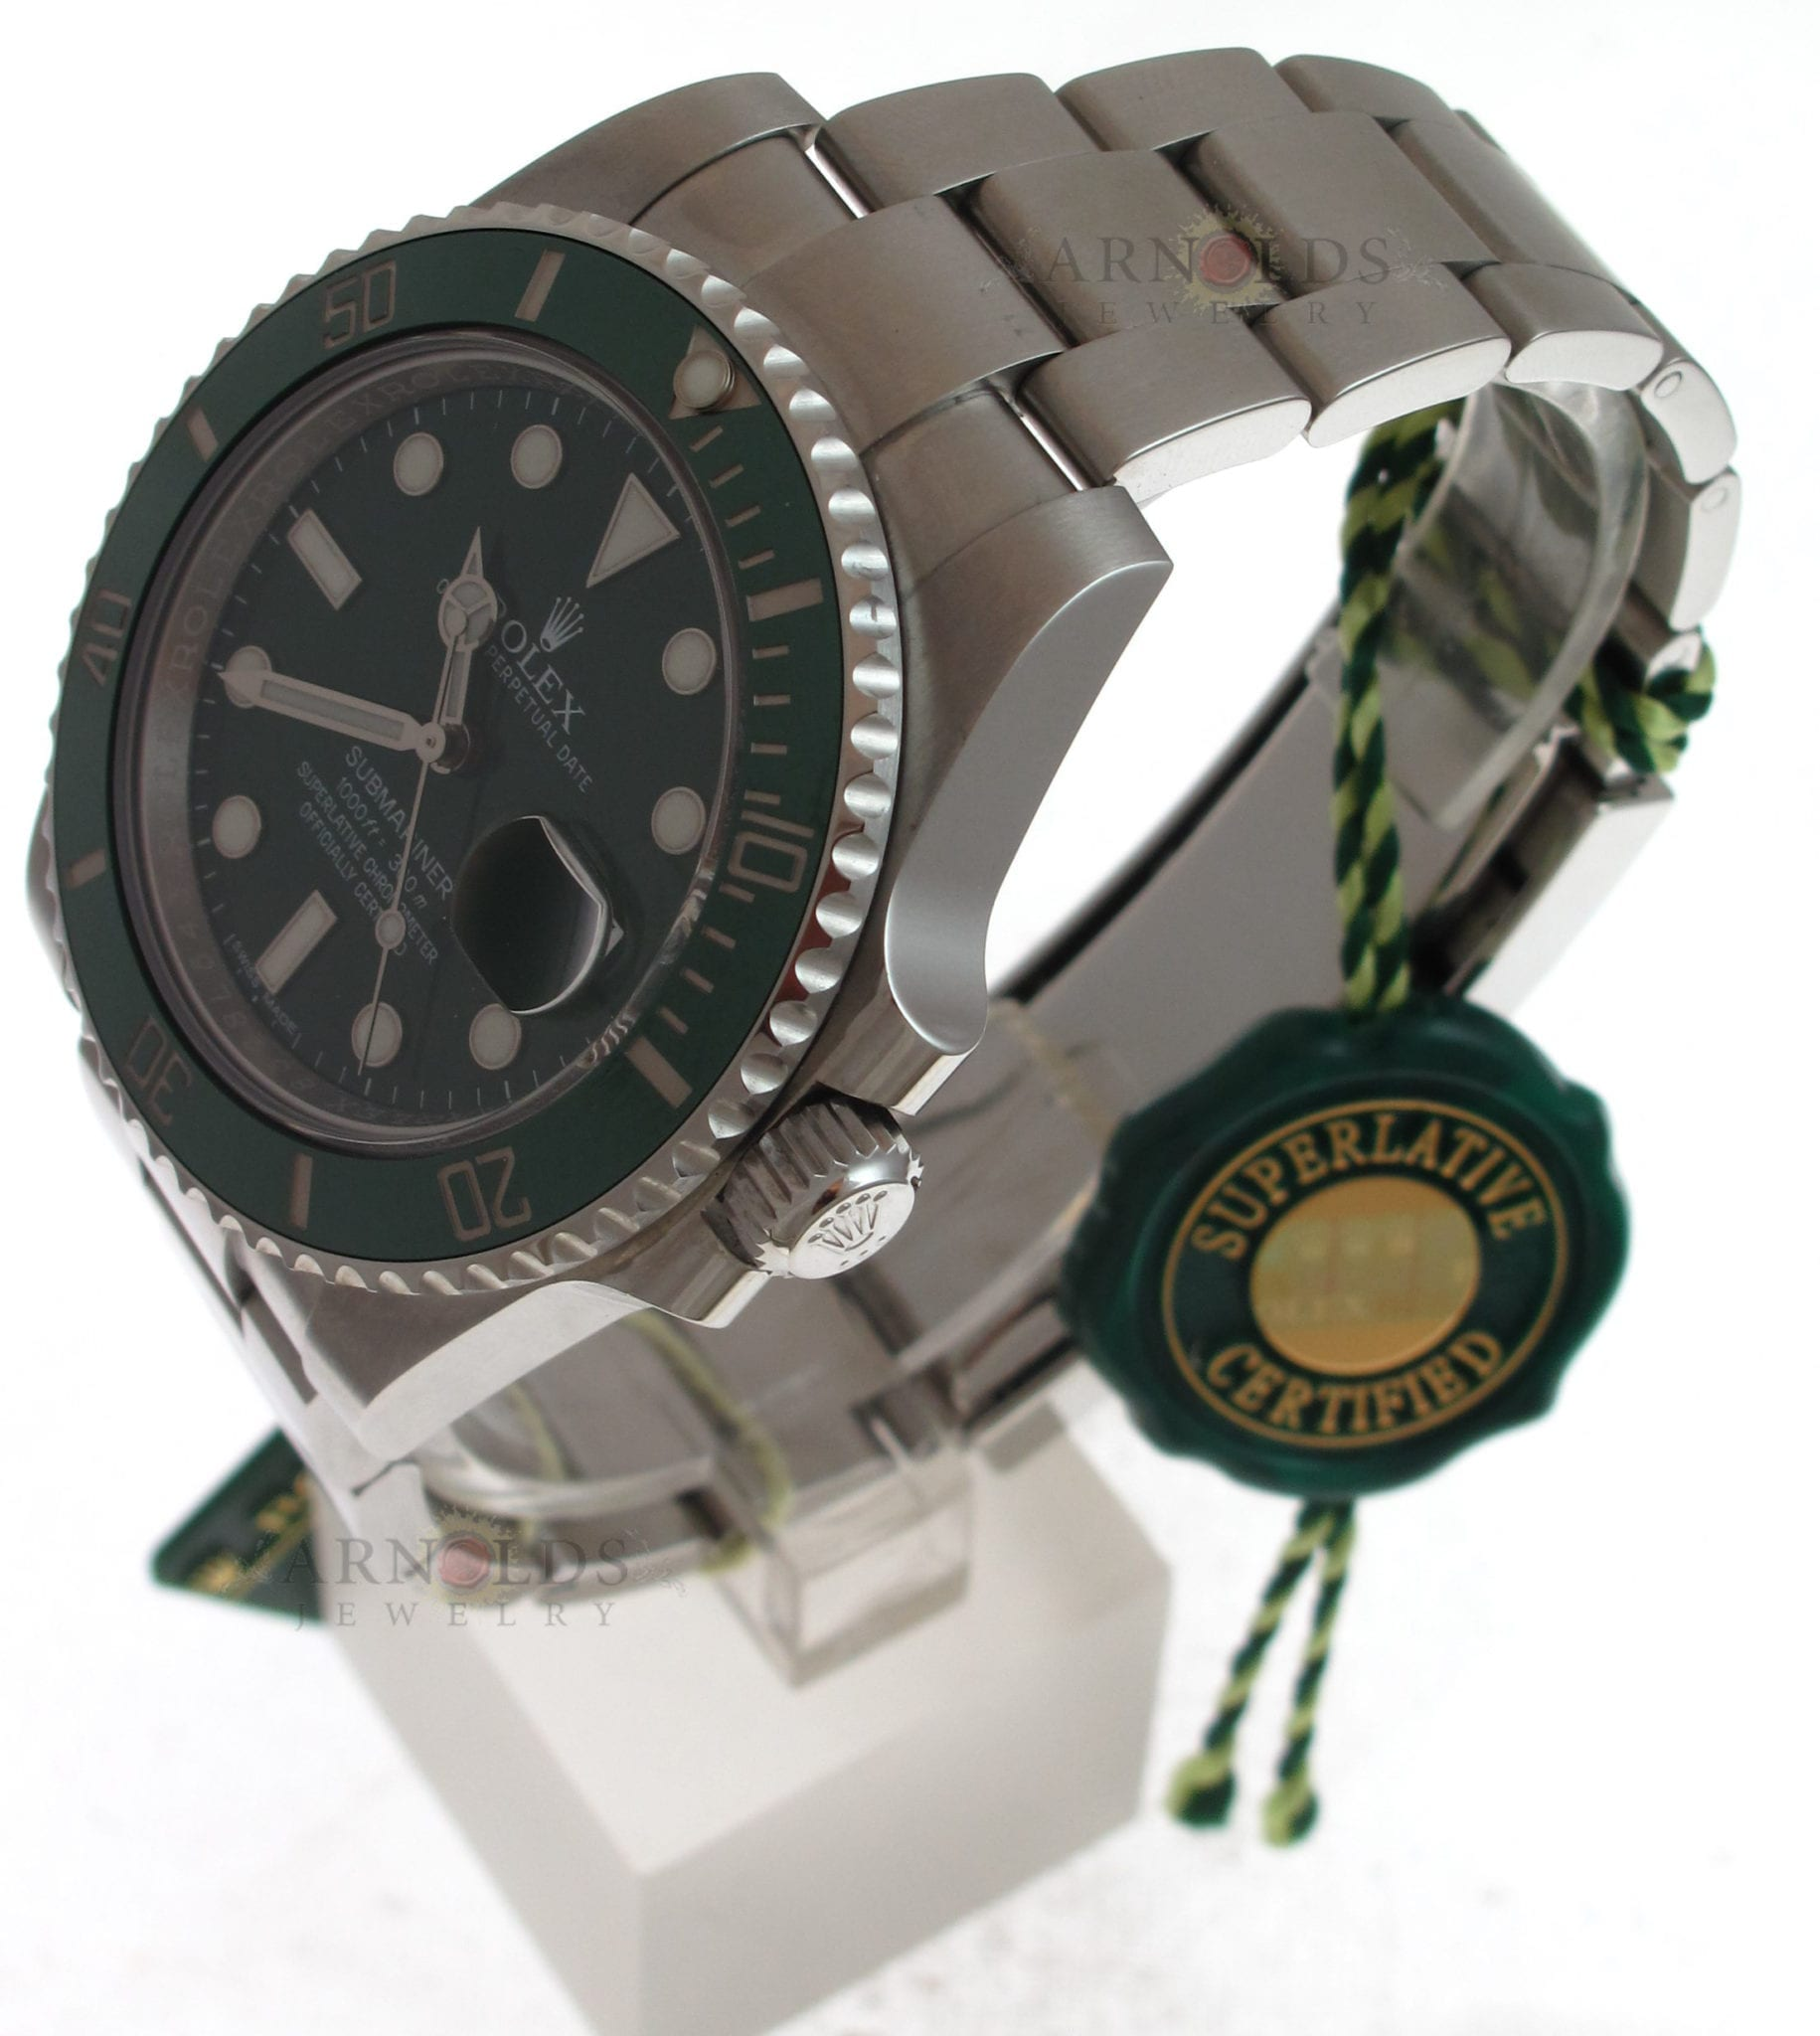 e7ff37058cc Pre-Owned 2015 (Like New Condition) Stainless Steel Rolex Submariner Watch  With Green Index Dial And Green Ceramic Bezel (The Hulk) With New Style  Oyster ...